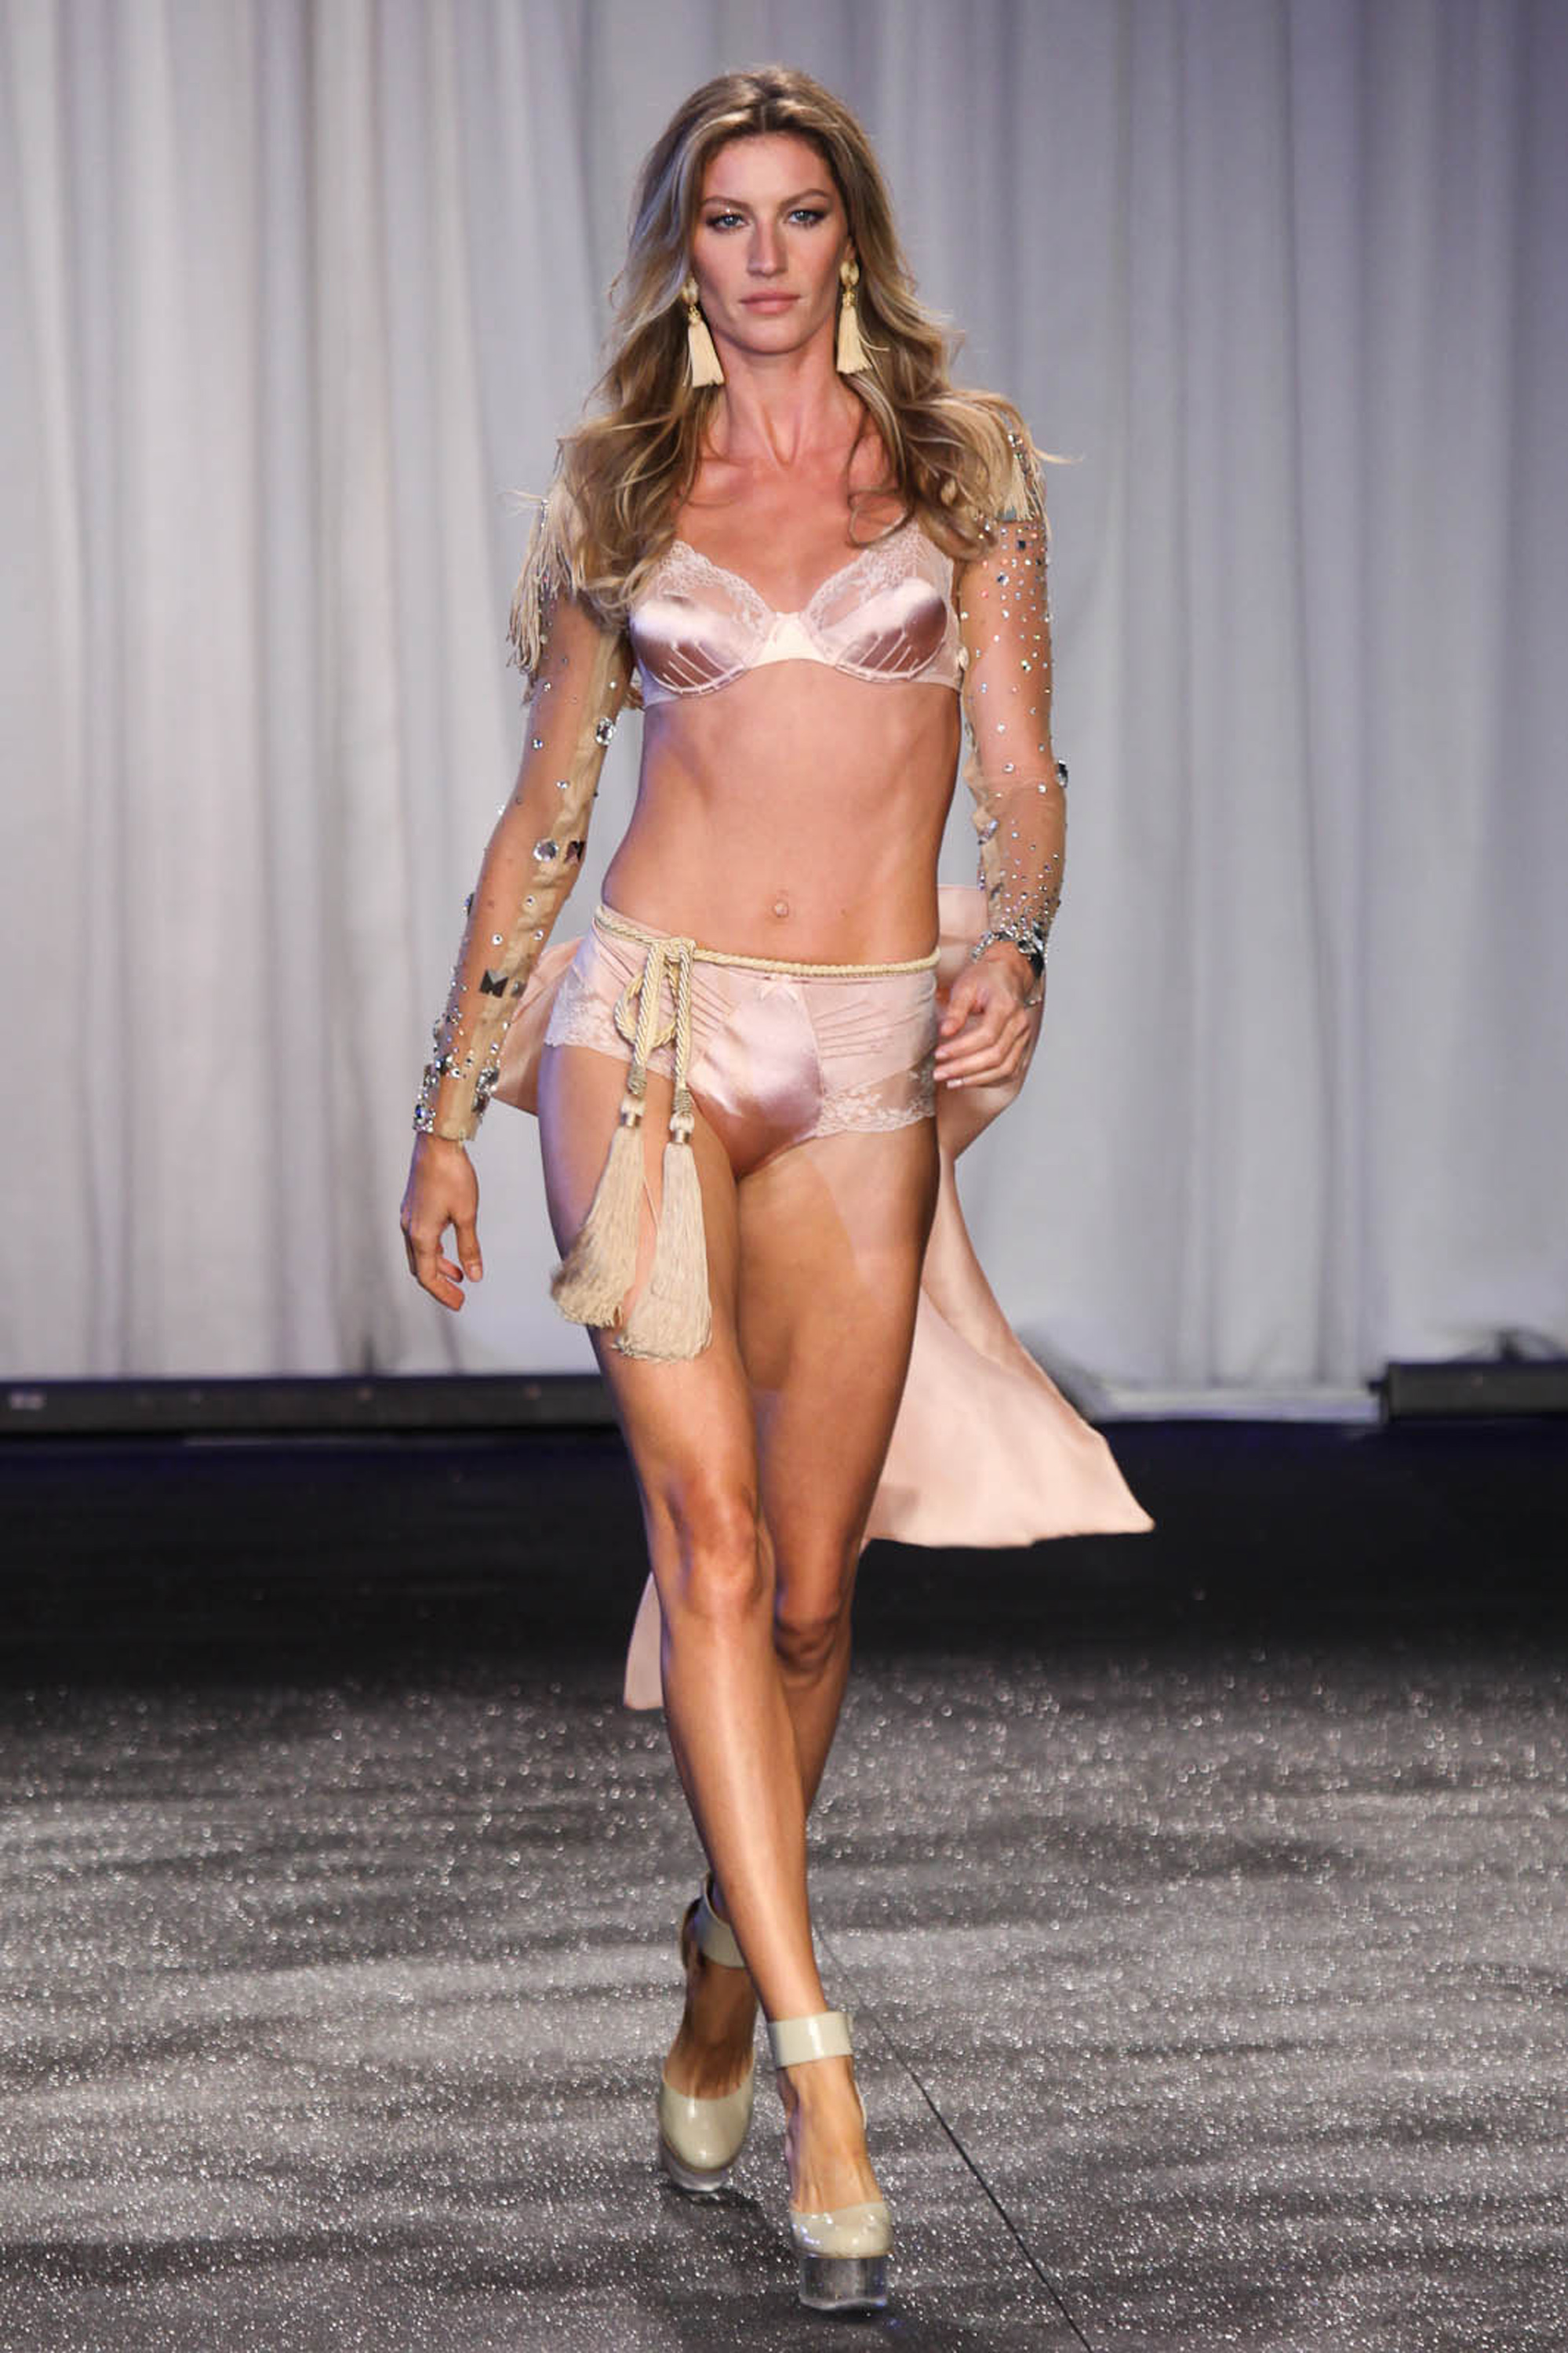 Gisele Bundchen launched her very own lingerie collection, for Brazilian company Hope, which she premiered on the catwalk in Sao Paulo, Brazil. Pictured: Gisele Bundchen Ref: SPL278021 130511 Picture by: Photo Rio News / Splash News Splash News and Pictures Los Angeles:310-821-2666 New York: 212-619-2666 London: 870-934-2666 photodesk@splashnews.com